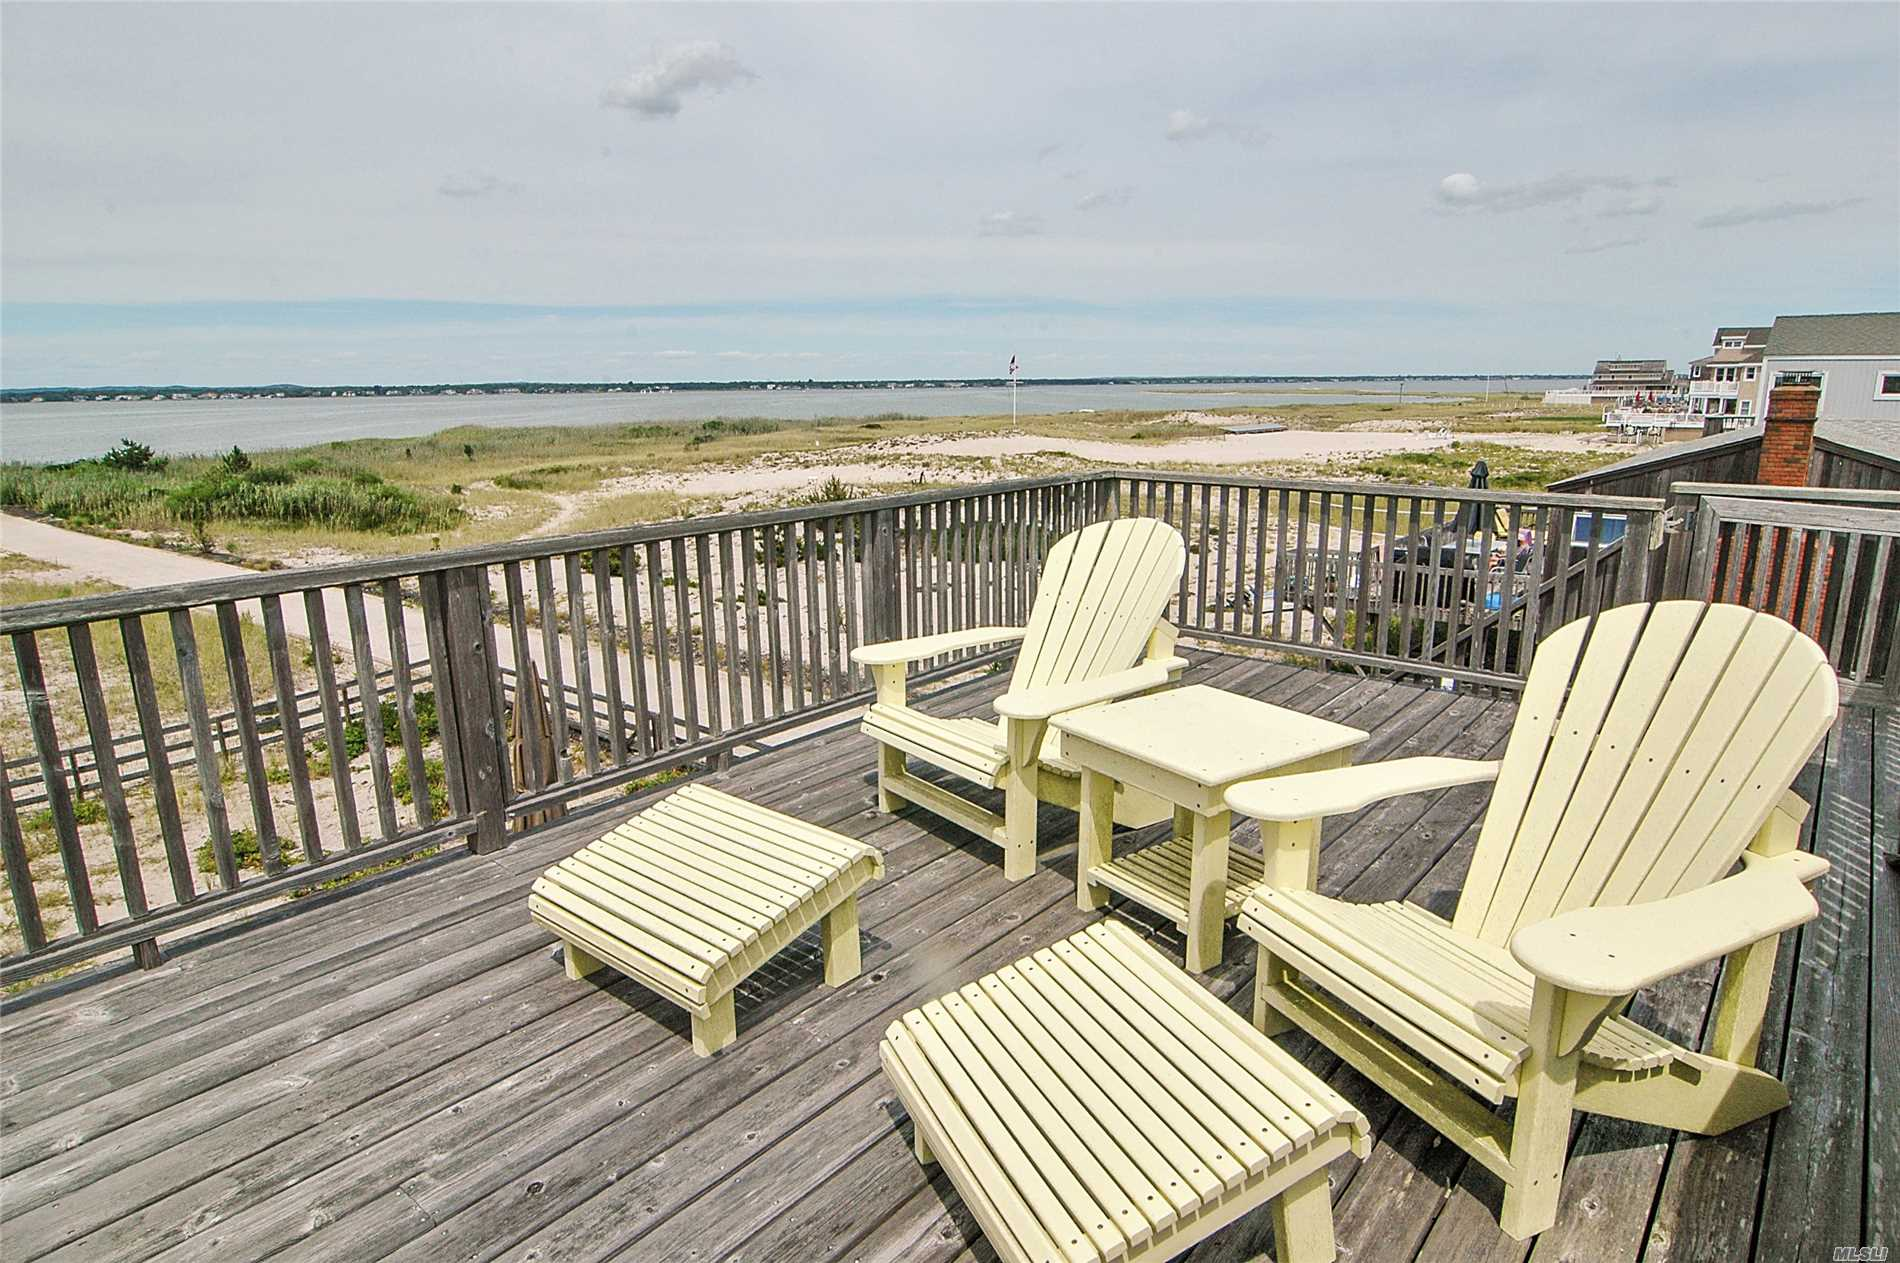 Keep The Lazy Days Of Summer In This Perfectly Renovated Three Bedroom Beach House In Westhampton Dunes. Enjoy The Right Of Way To Both The Ocean Or Bay Beaches, Relax On Your Deck To Enjoy The Bay Views Or Sit On Your Roof Deck For The Best Ocean And Bay Views And Breezes. There Is Even A Fireplace On Those Rare Cool Summer Nights. Don't Miss Another Hampton's Sunset!